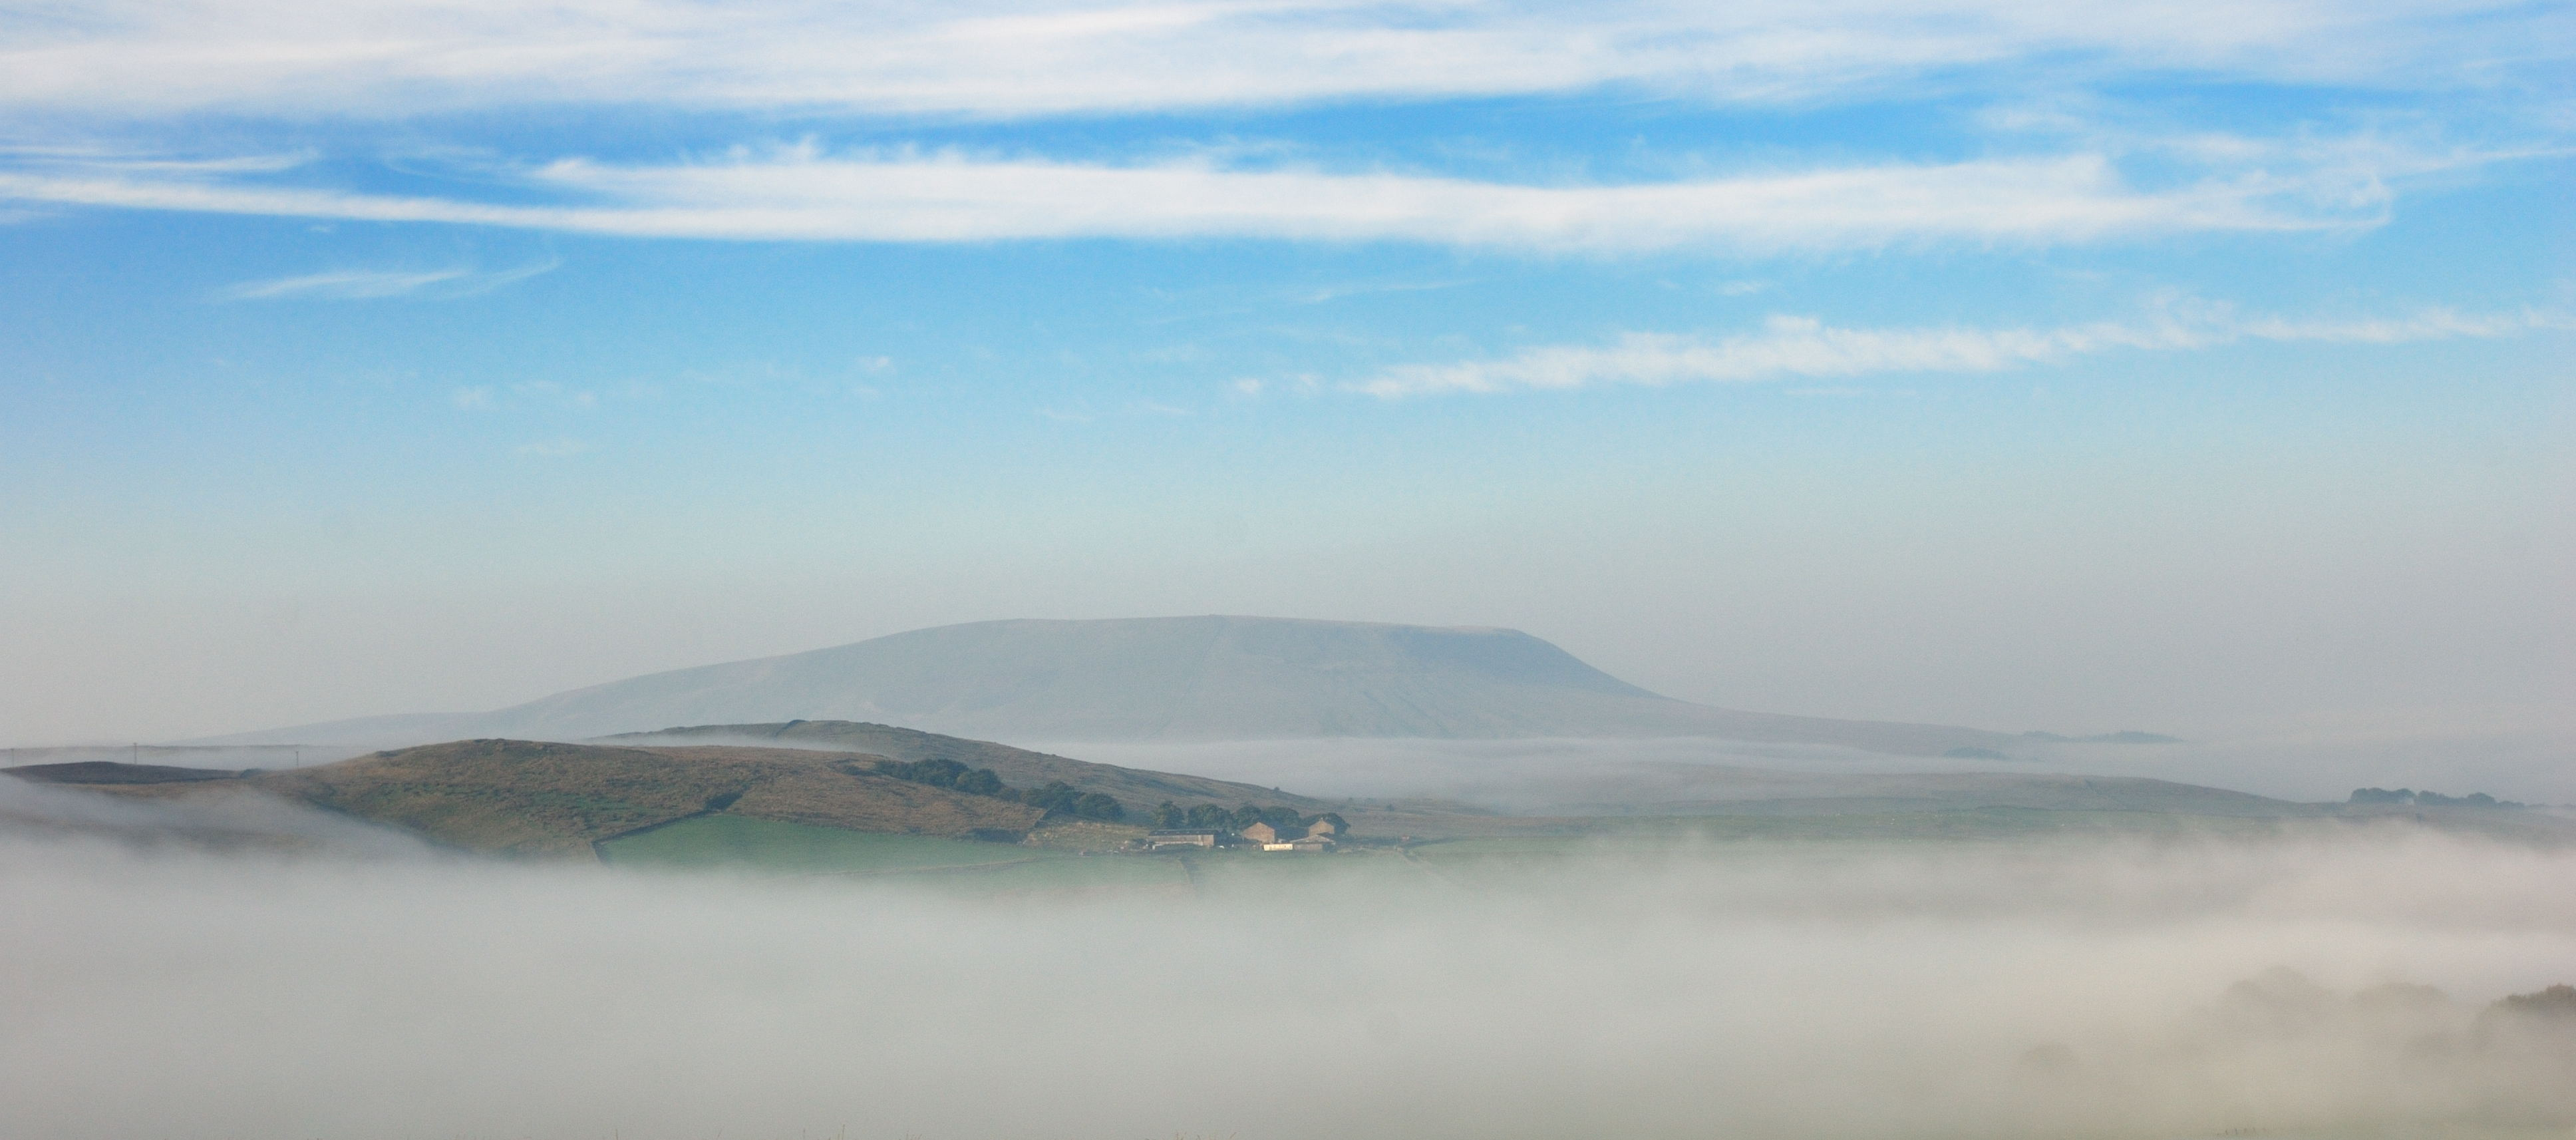 171/365 Pendle above the mist